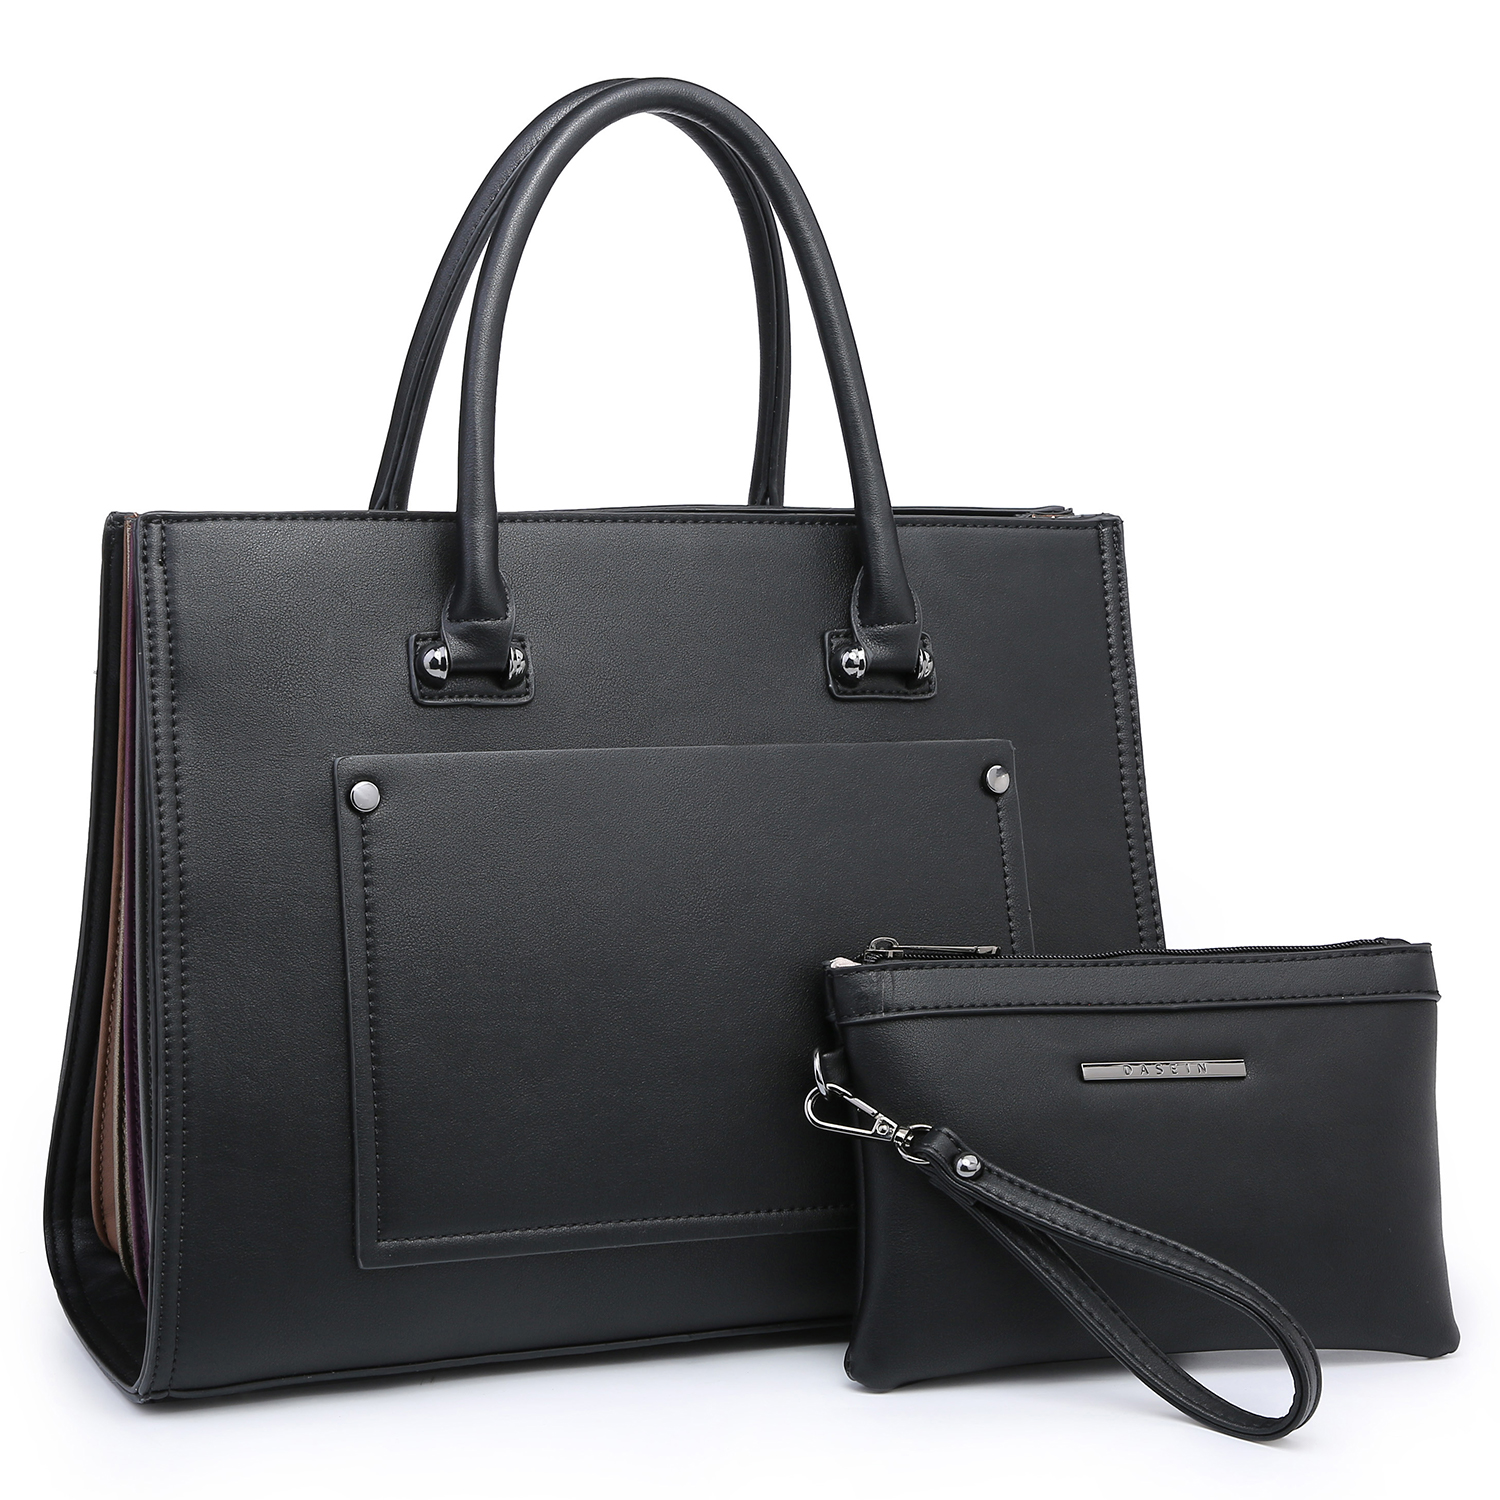 Dasein Faux Leather Briefcase Satchel with FanFold Multi color edge design on both sides and with Matching Accessory Pouch